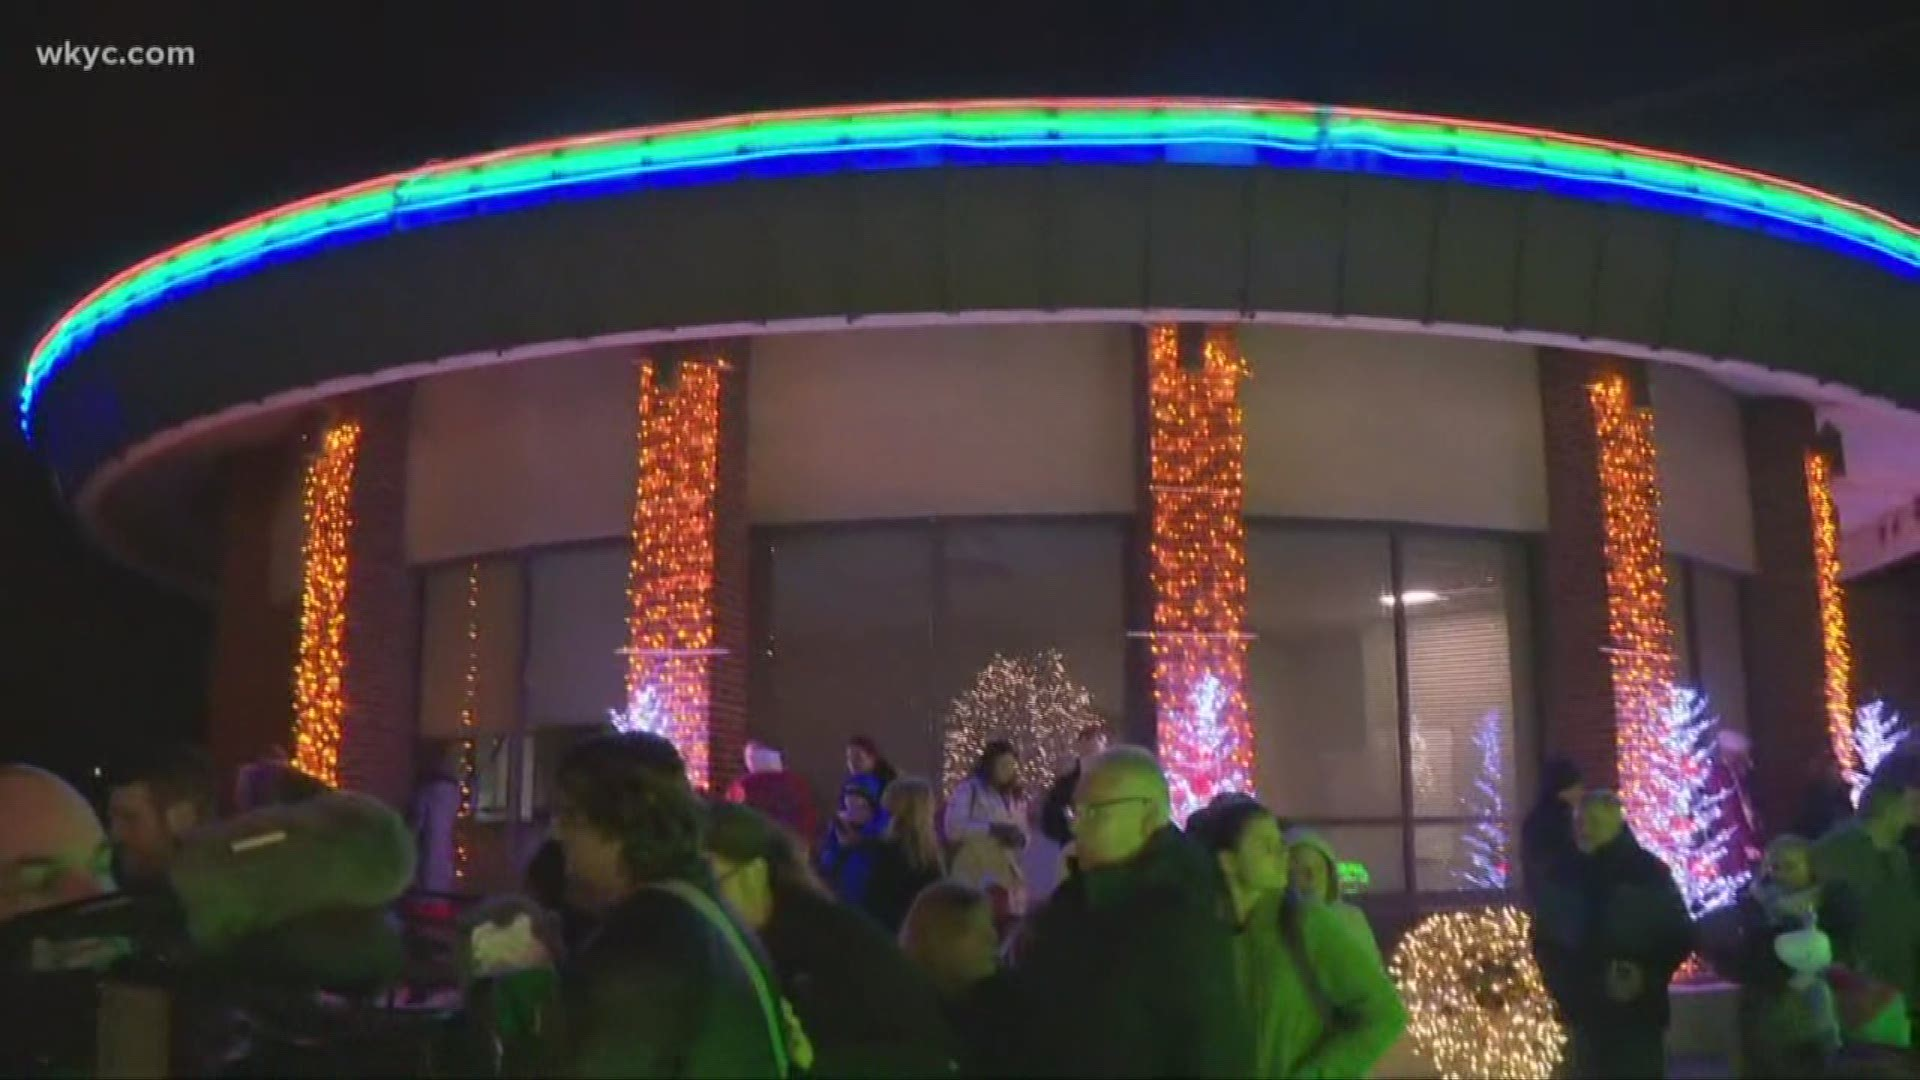 Ge Turns On Holiday Lights Display At